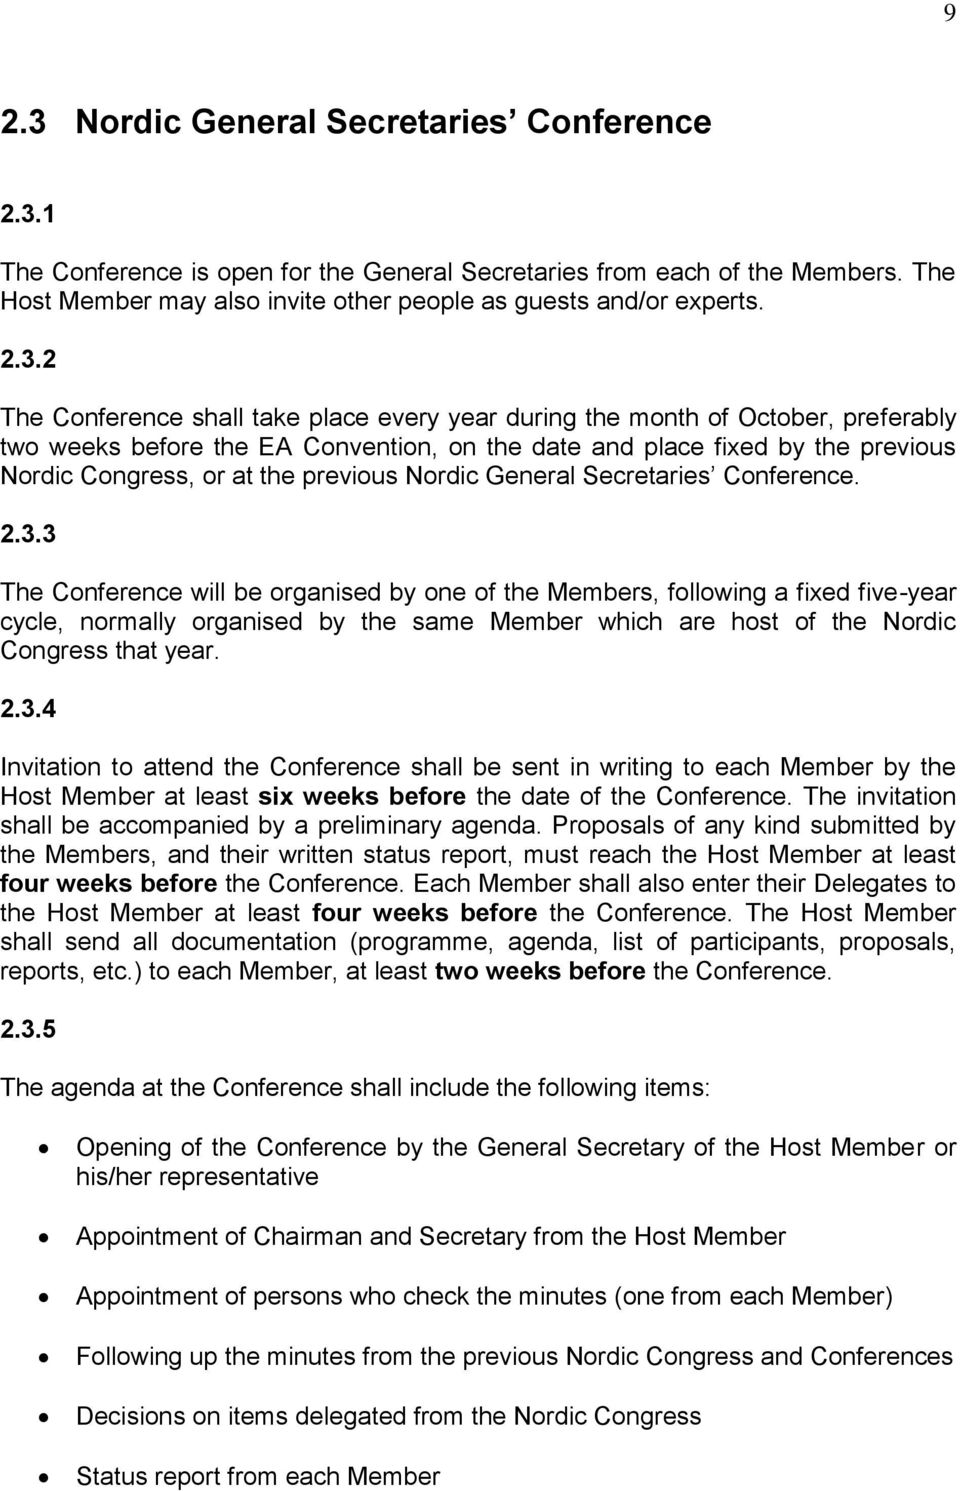 1 The Conference is open for the General Secretaries from each of the Members. The Host Member may also invite other people as guests and/or experts. 2.3.